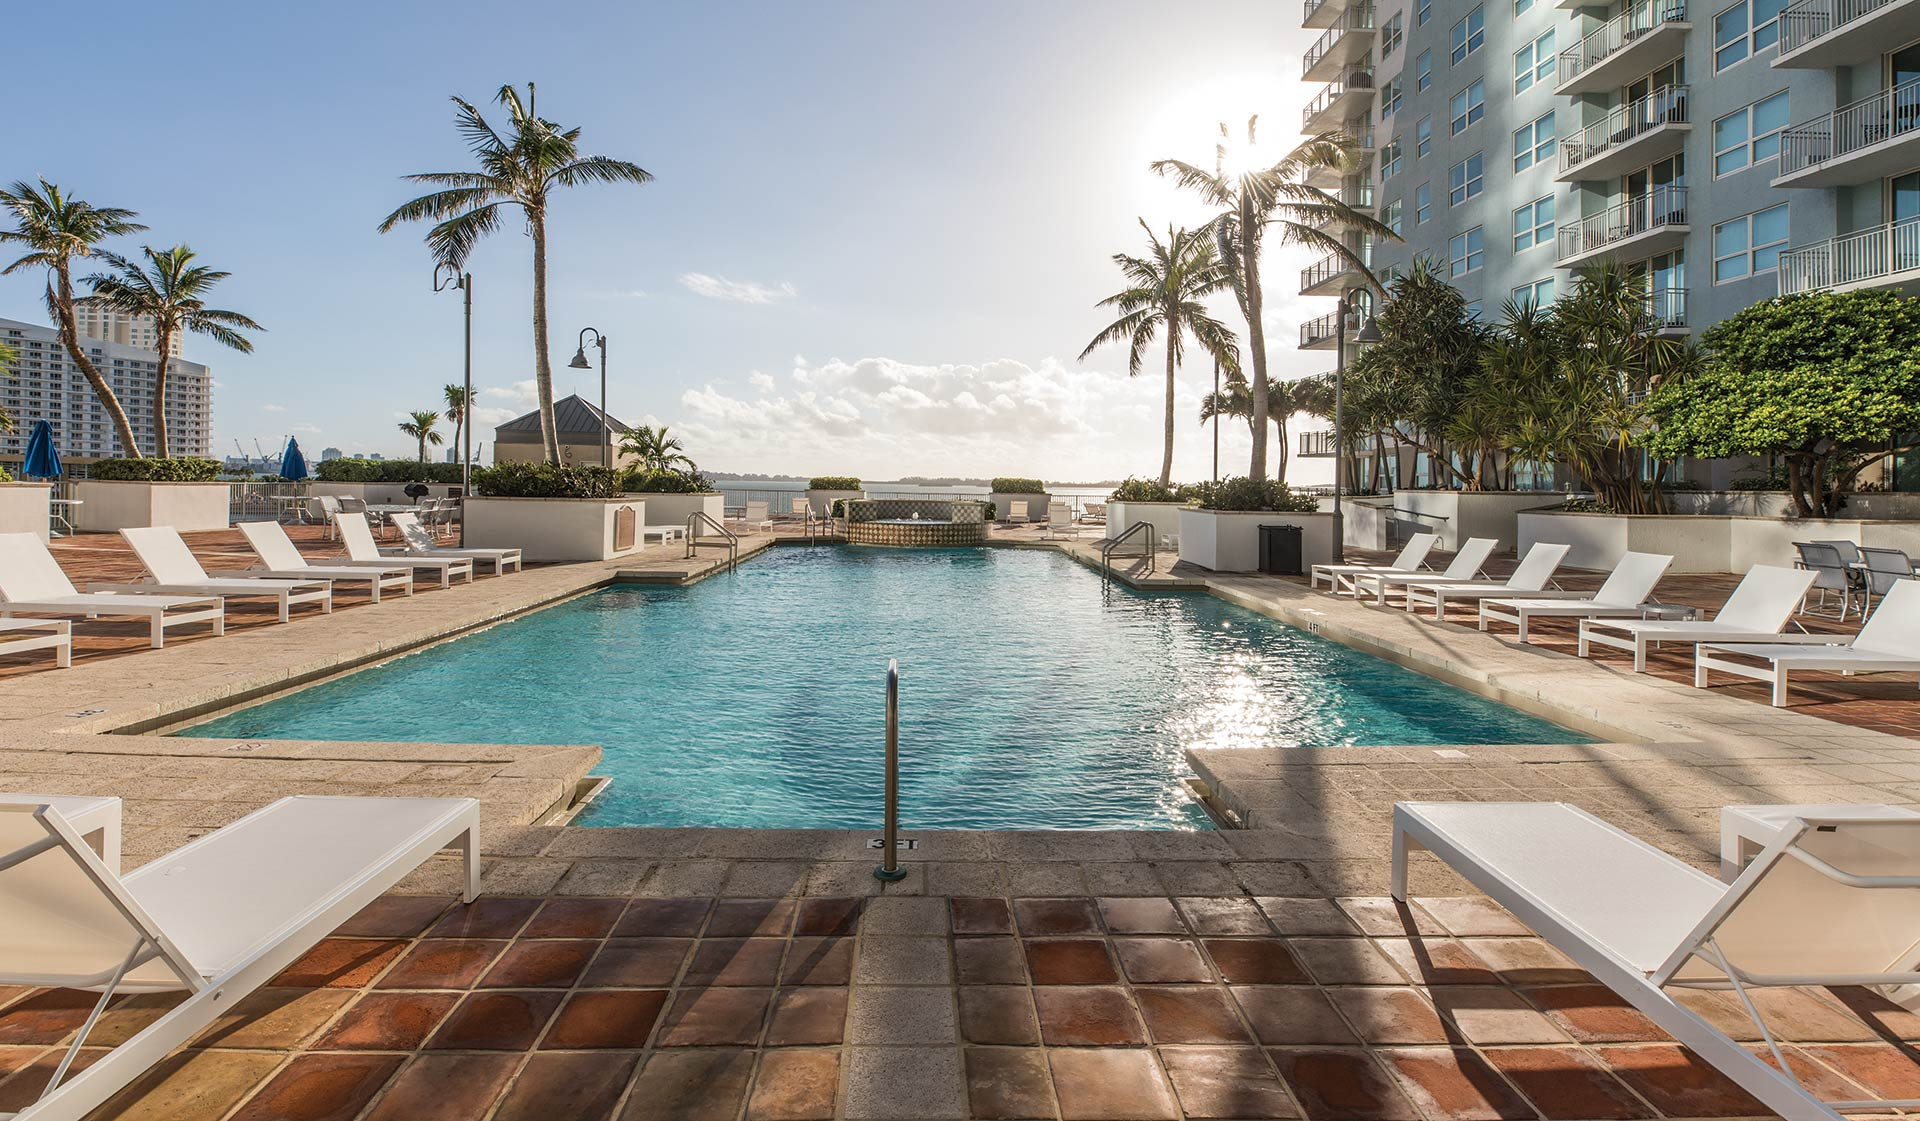 Yacht Club at Brickell - Pool - Miami, FL